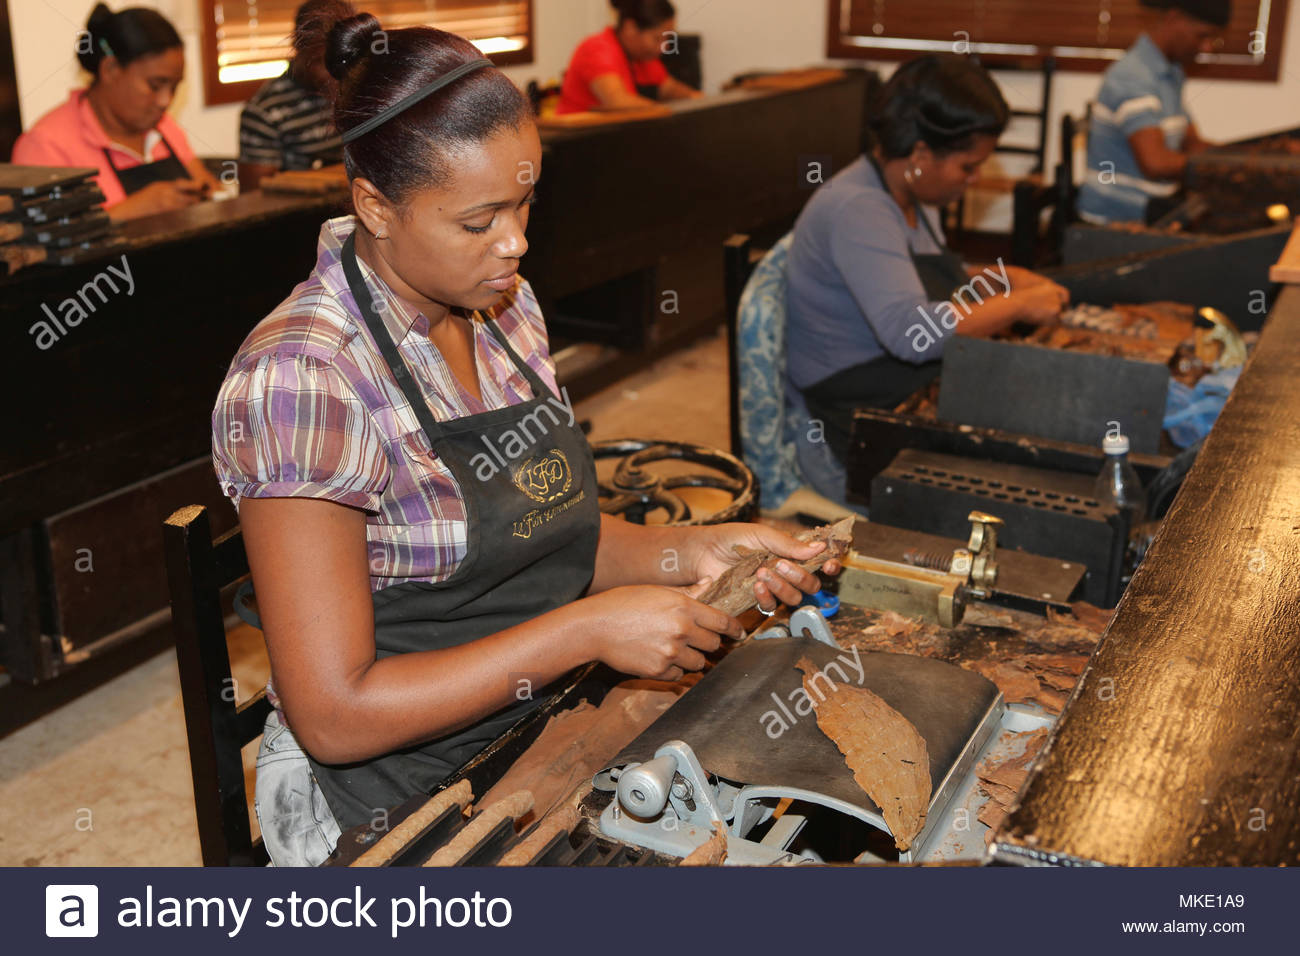 Workers roll and press cigars at the LaFlor Dominicana Cigar Factory in the Dominican Republic. - Stock Image